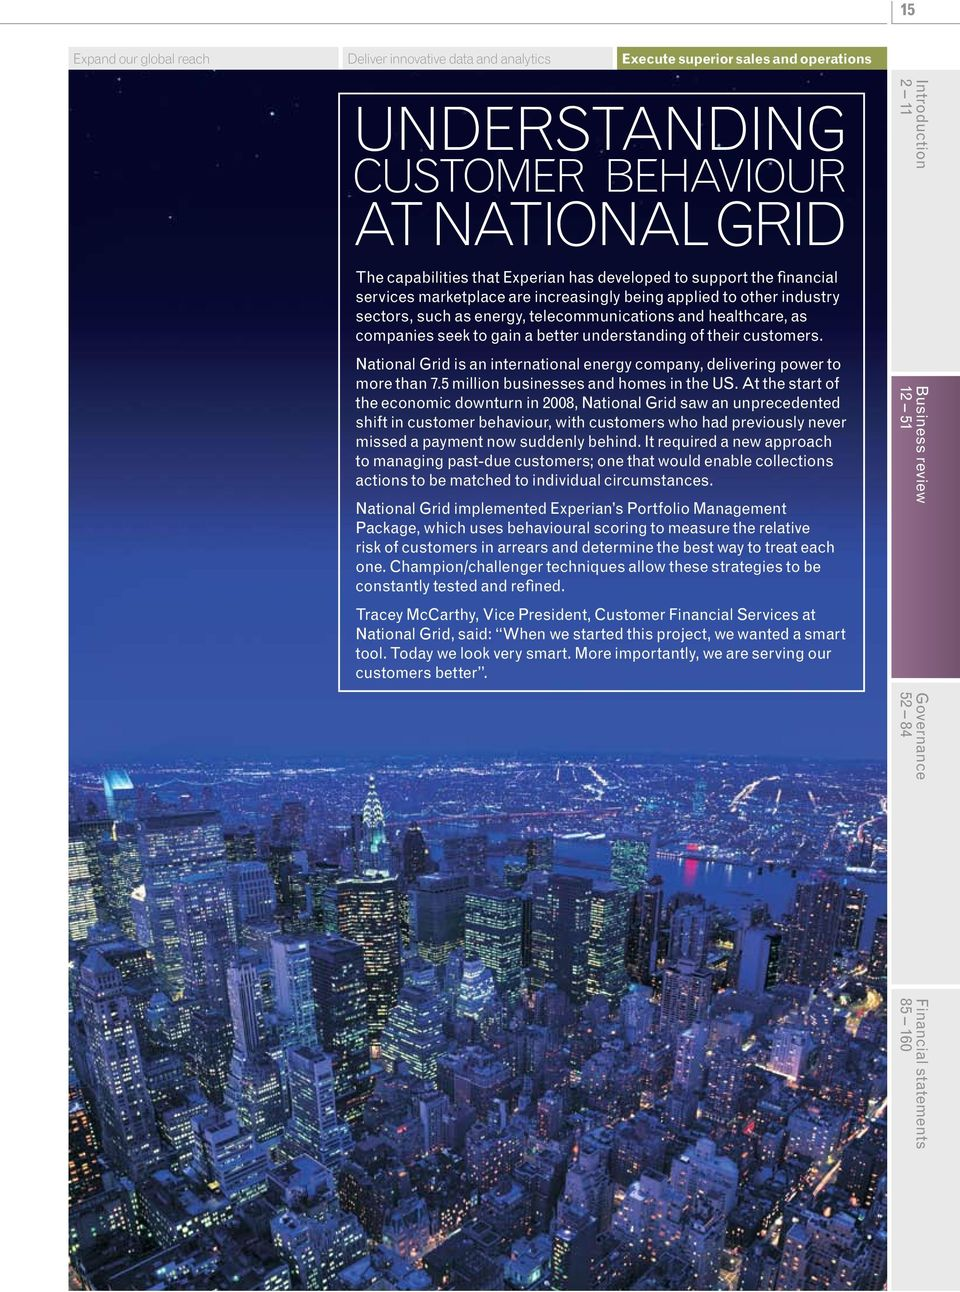 understanding of their customers. National Grid is an international energy company, delivering power to more than 7.5 million businesses and homes in the US.